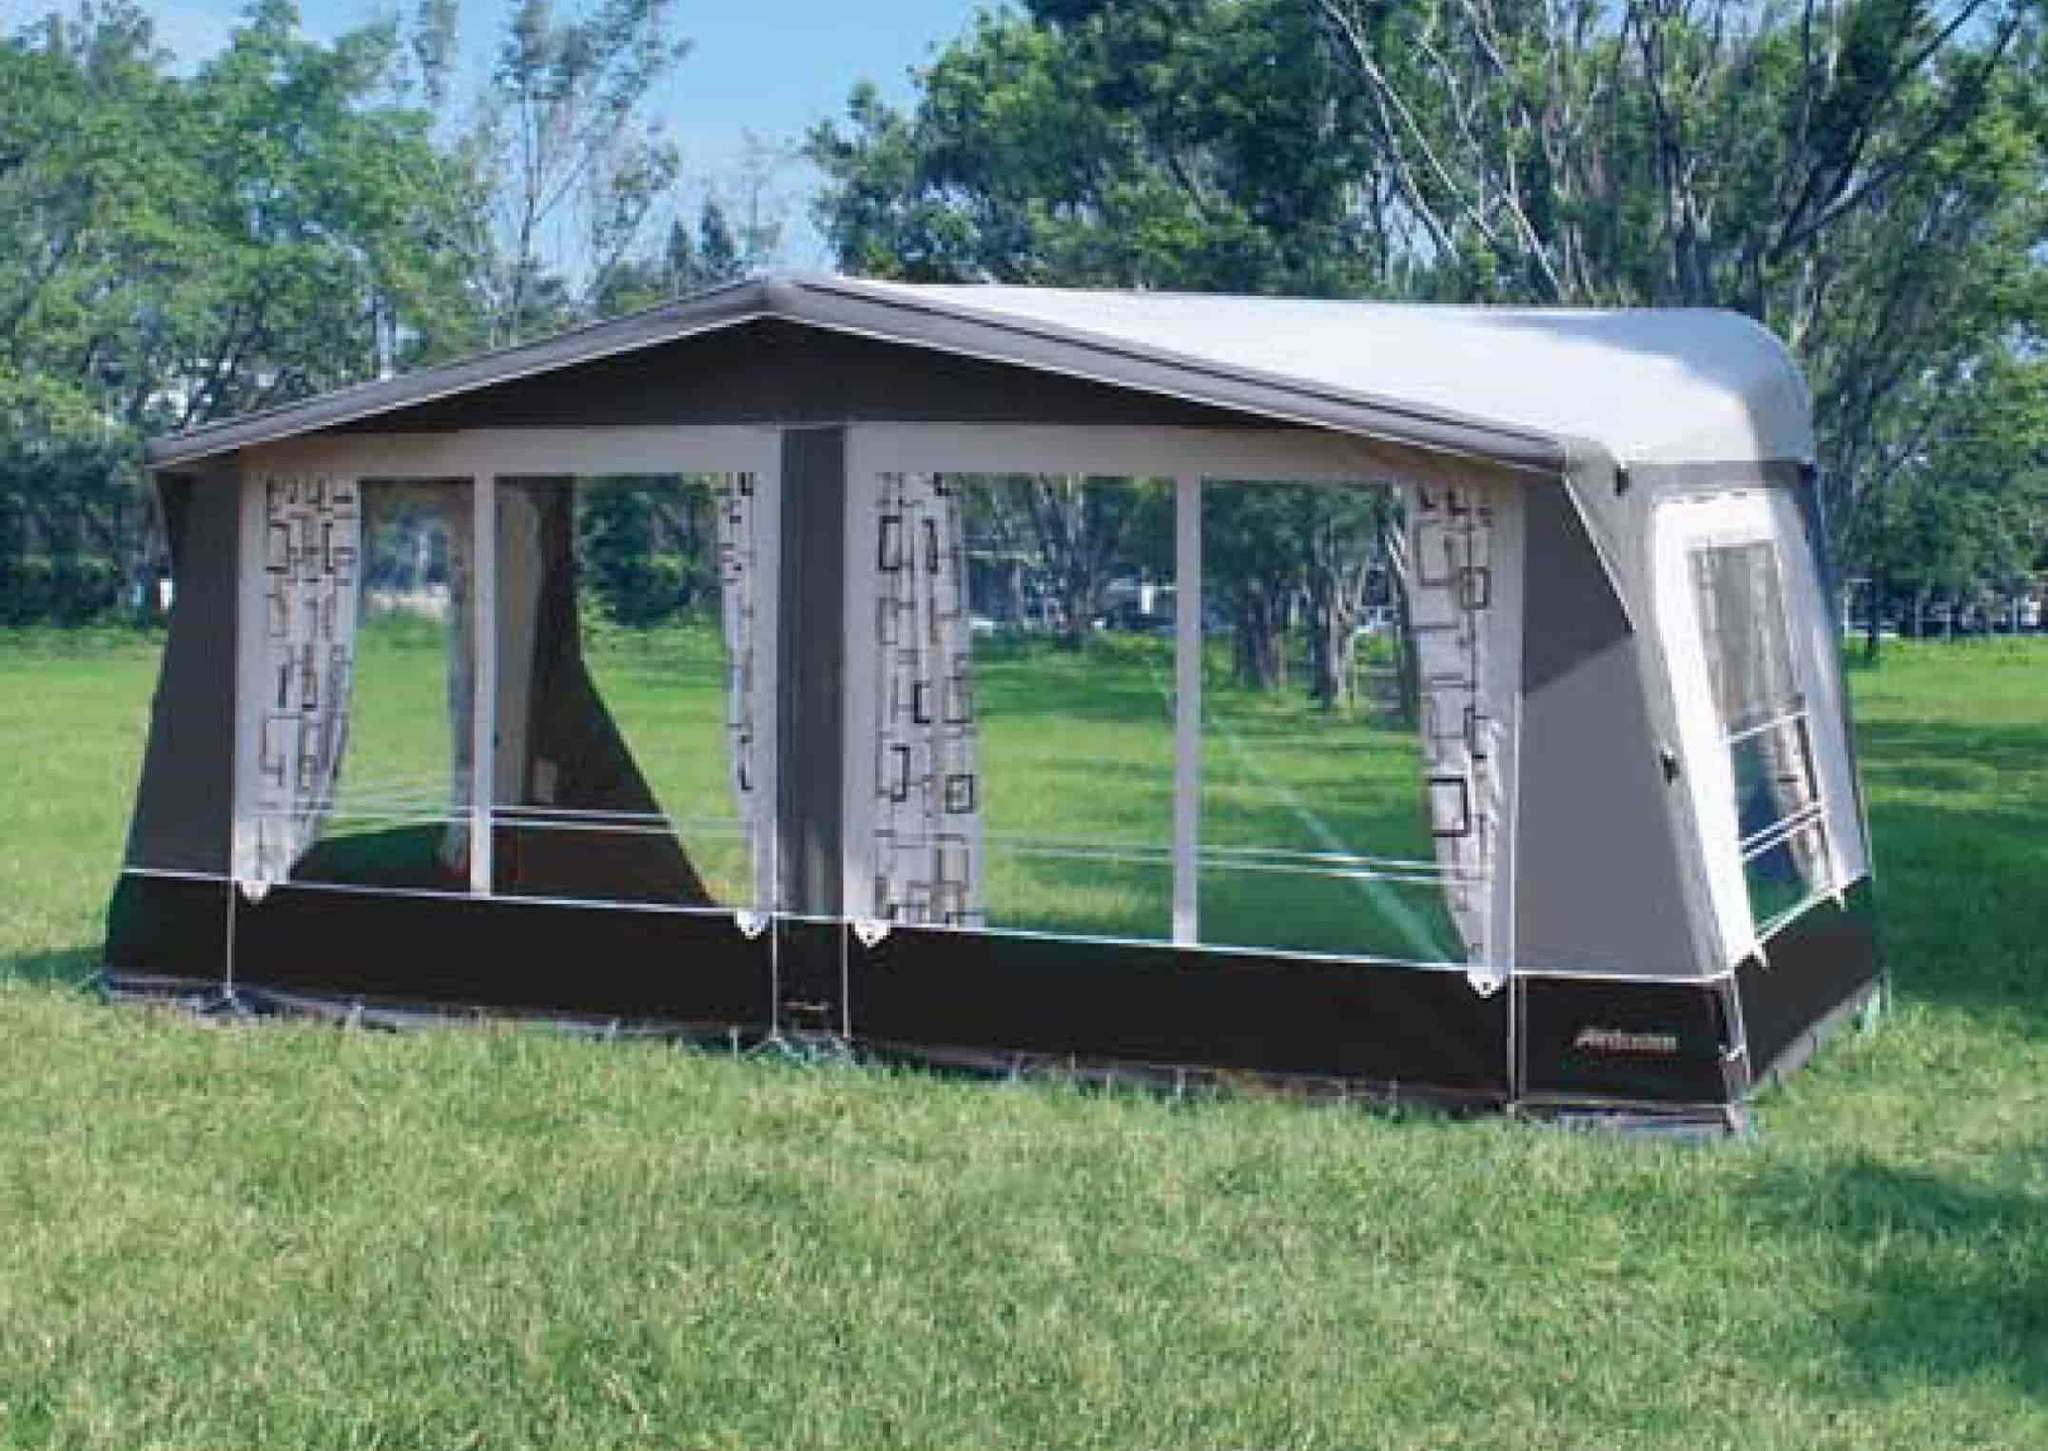 Camptech Kensington Full Traditional Inflatable Air Caravan Awning Free Straps 2019 Min 1024X1024 2X